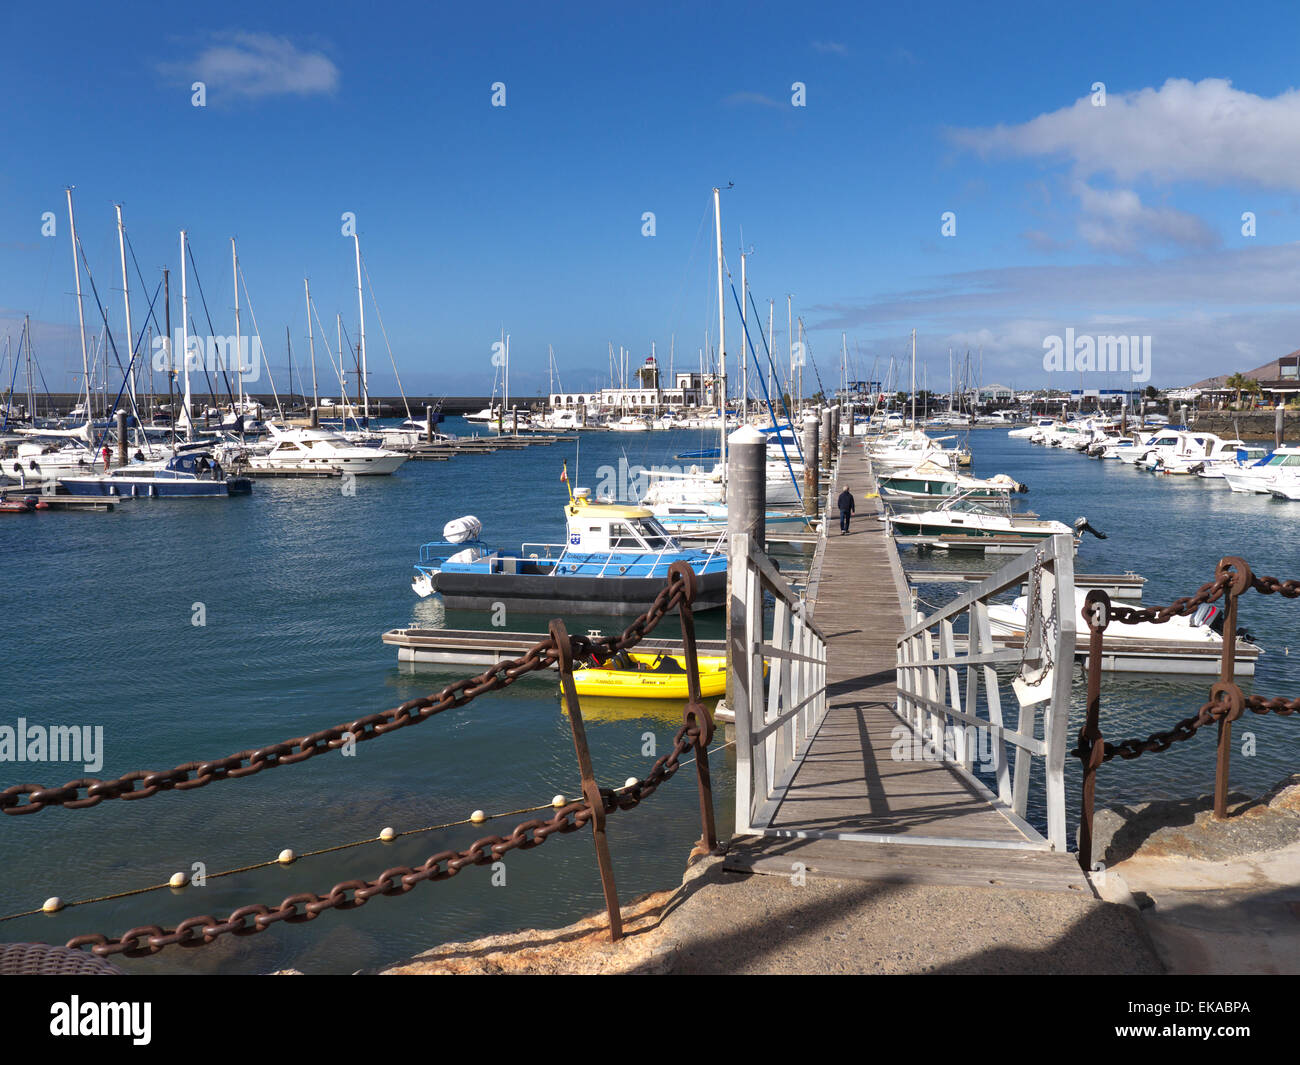 Marina Rubicon luxury marina moorings Lanzarote Canary Islands Spain - Stock Image